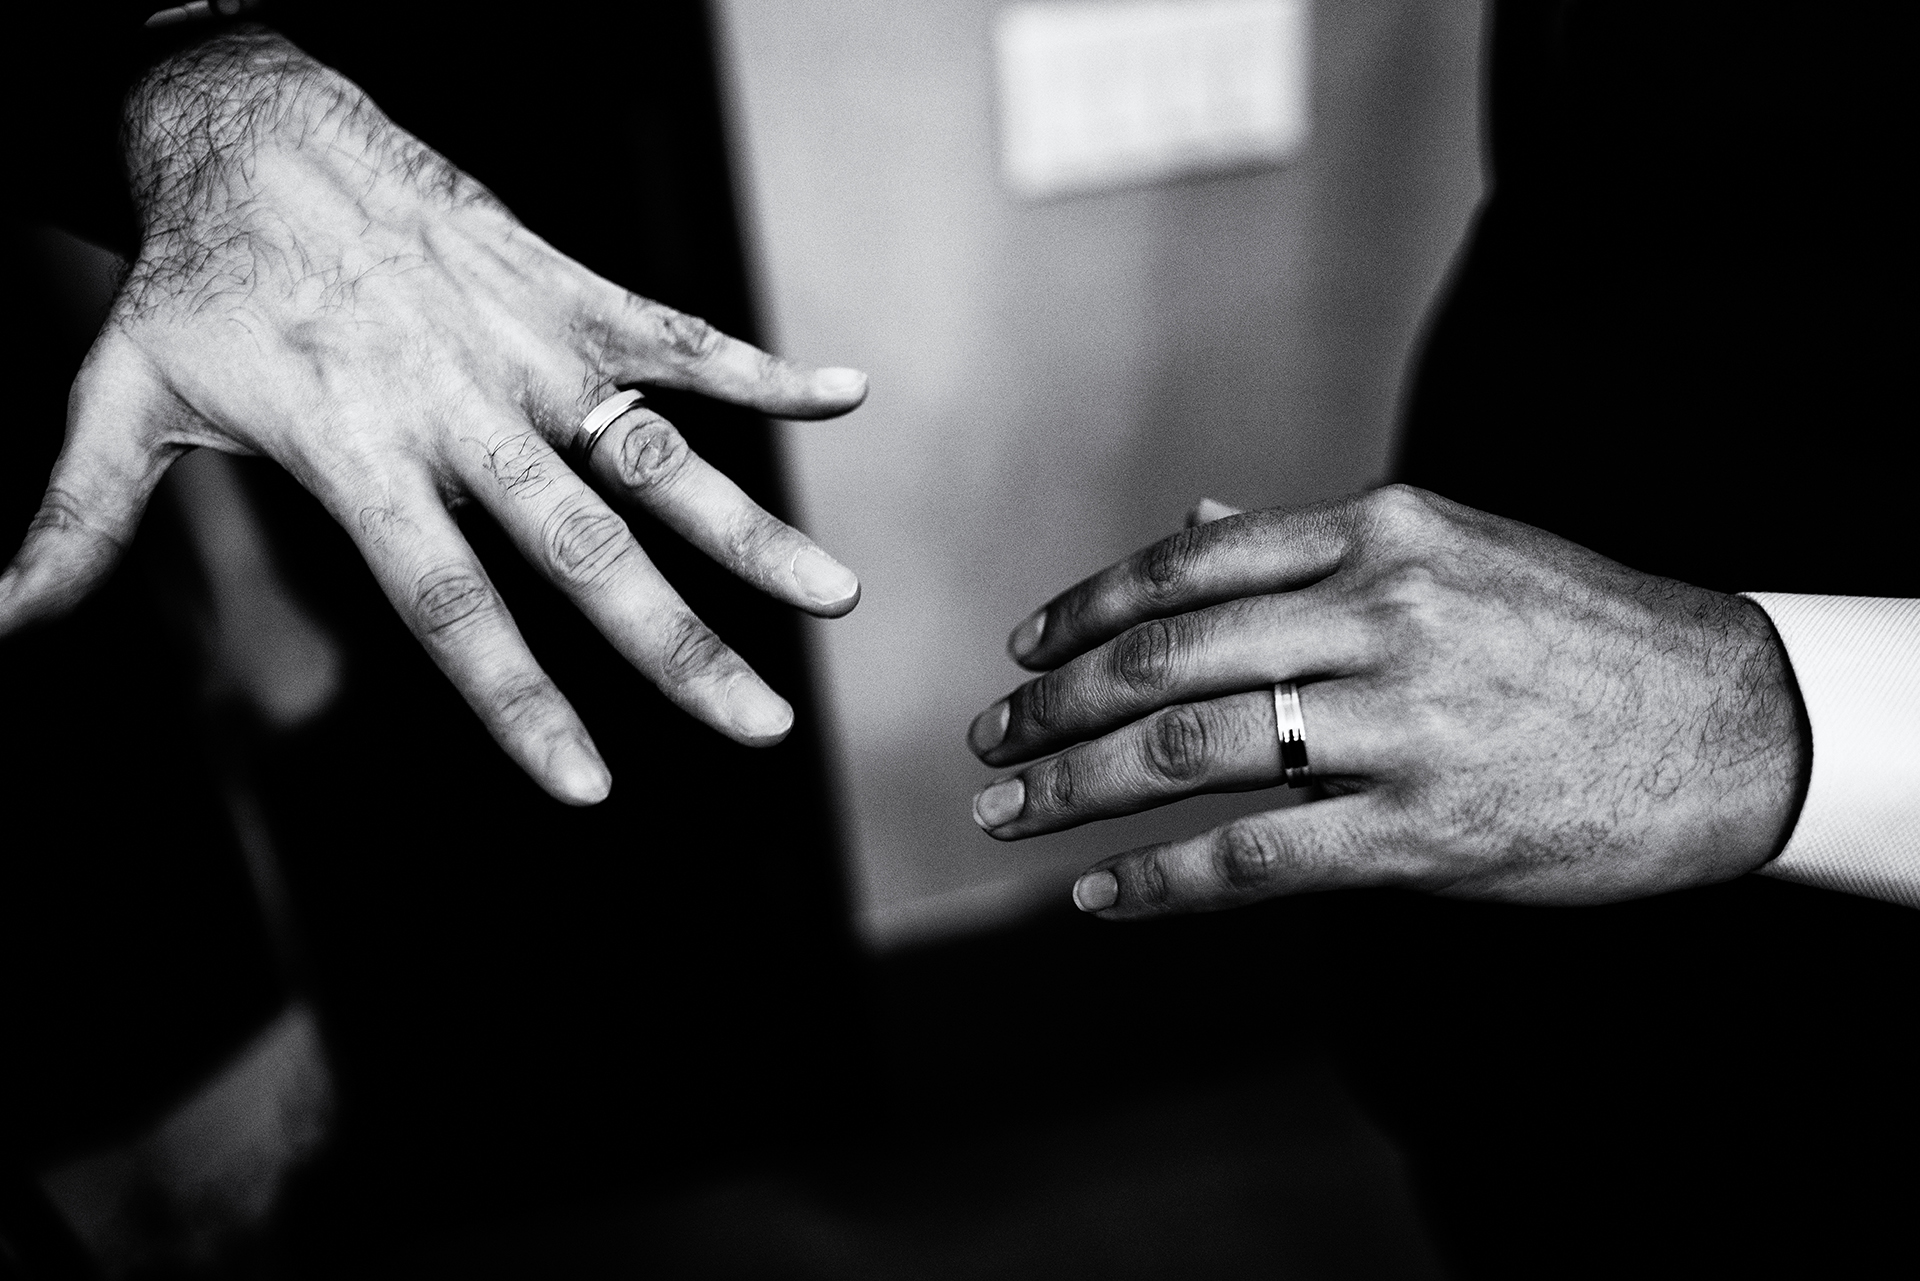 NYC City Hall Wedding/Elopement Photographer for New York City | The groom shows off his wedding ring